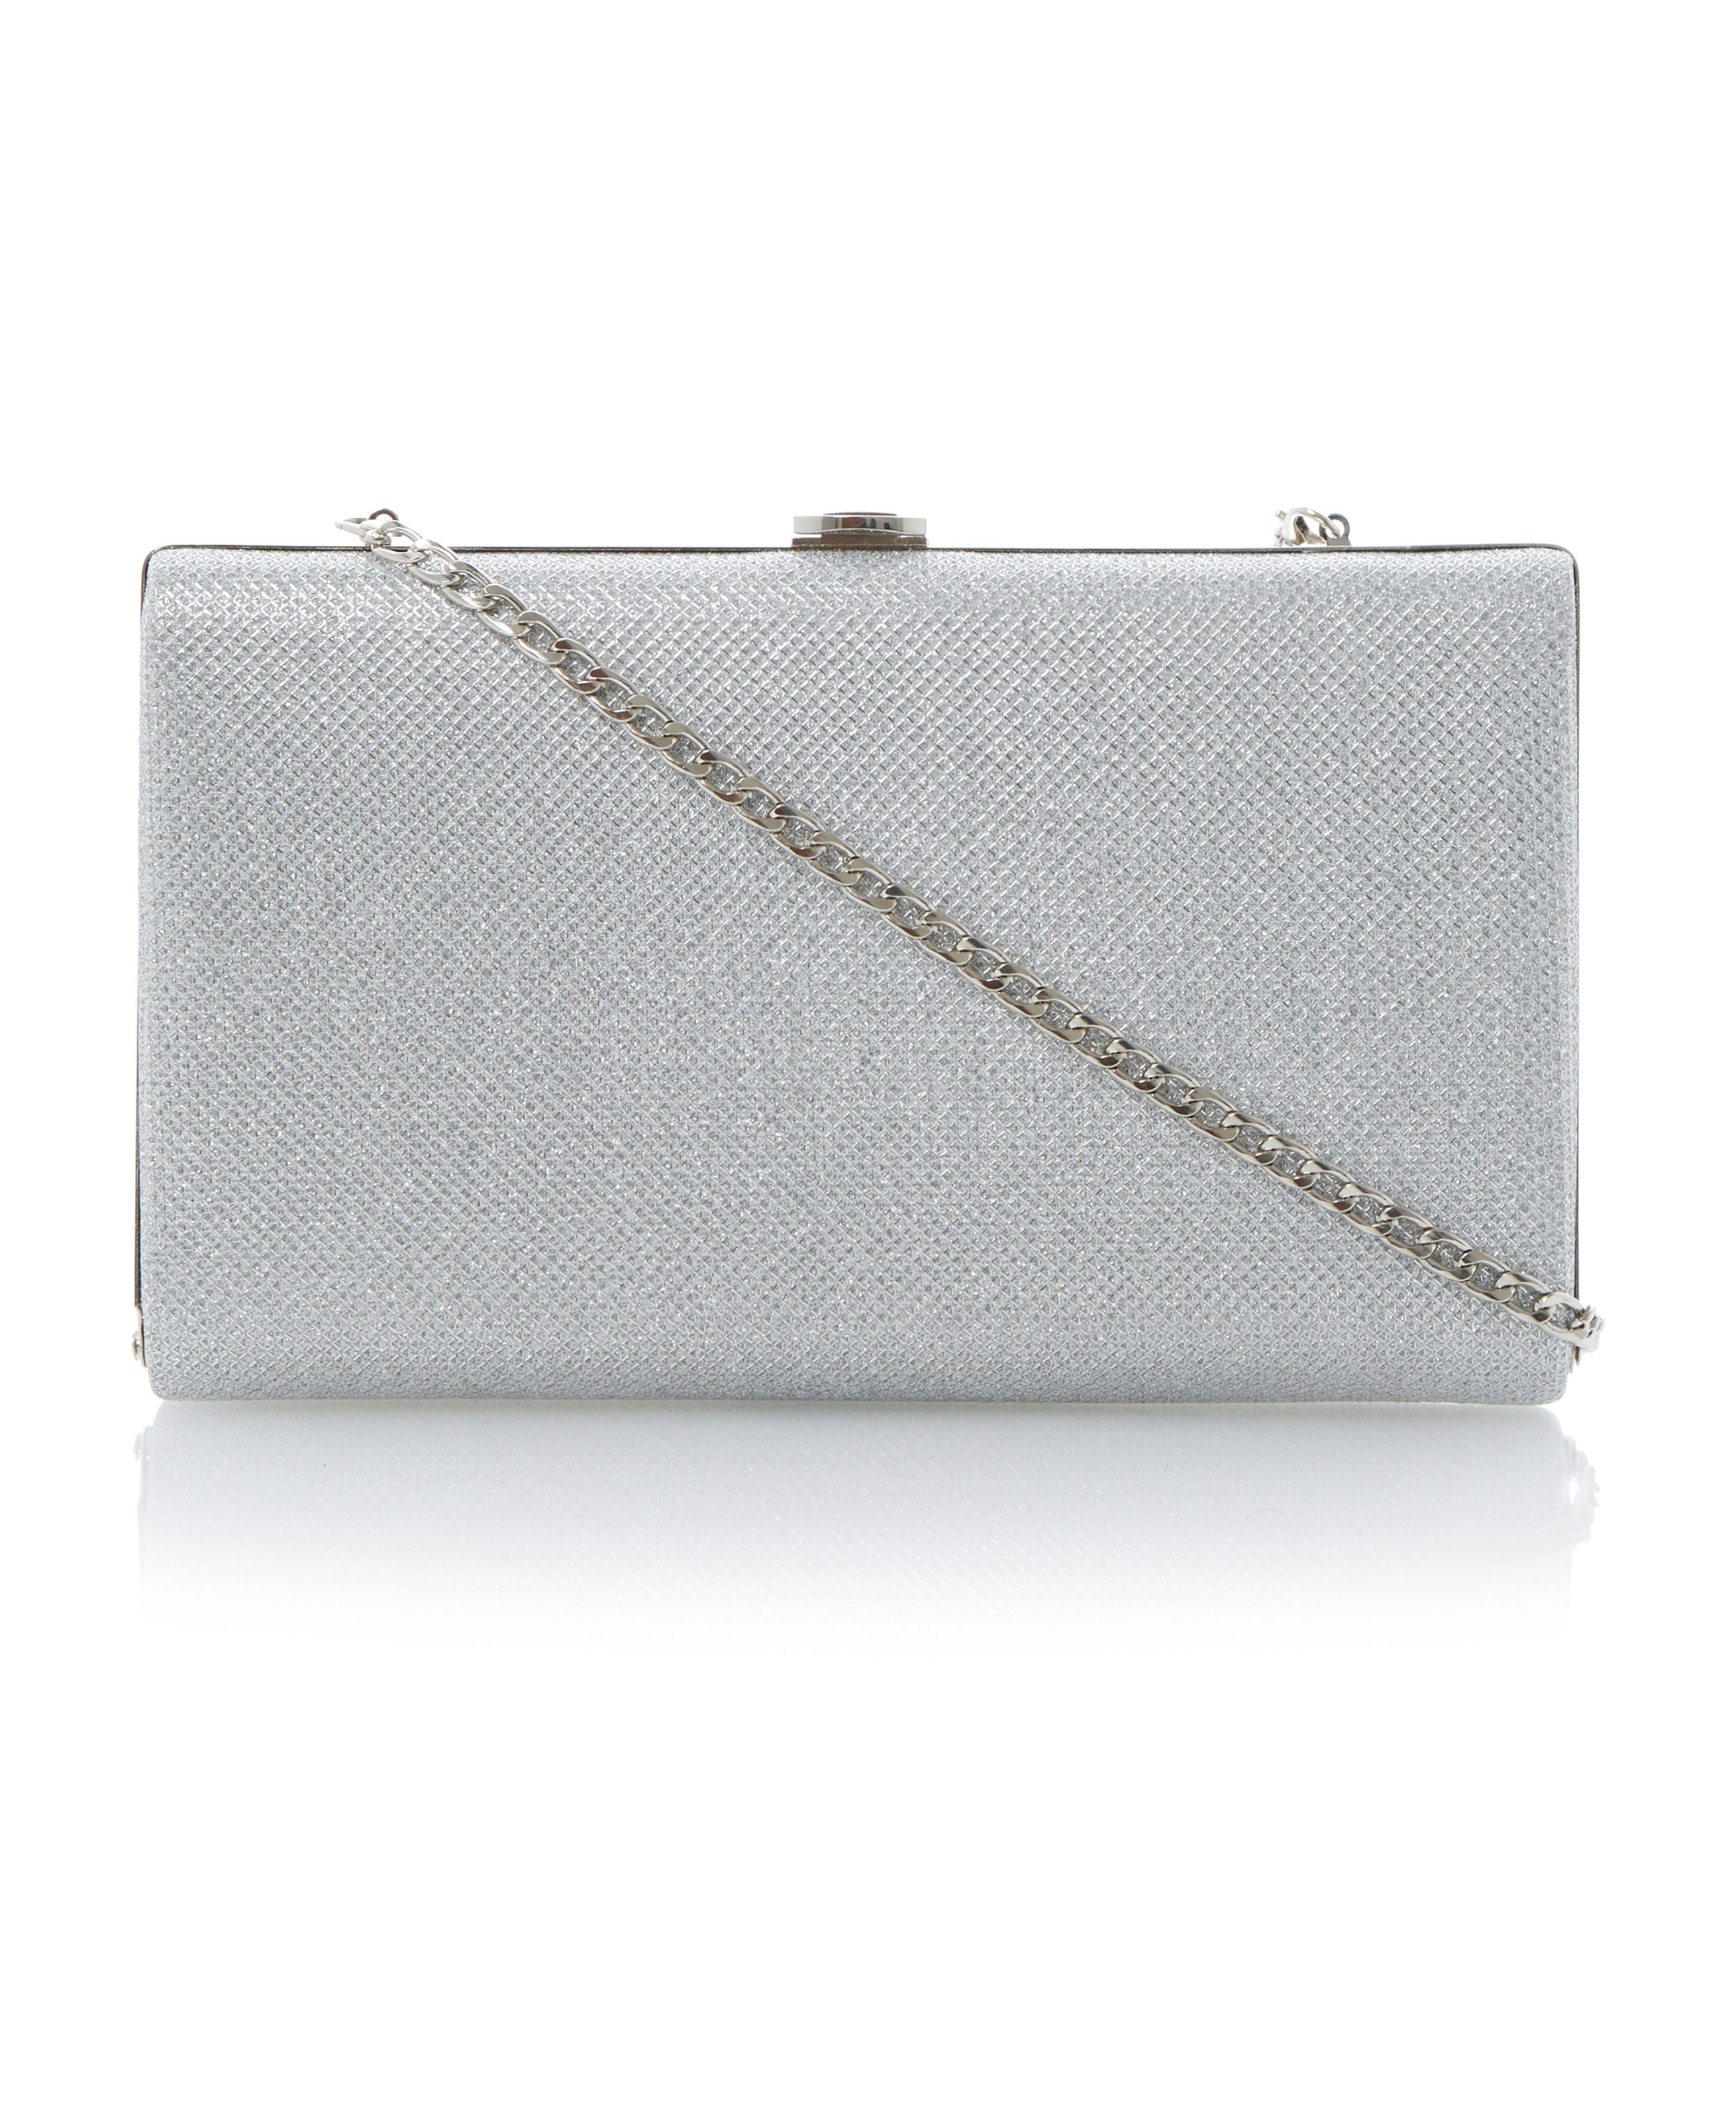 Burex framed lurex clutch bag